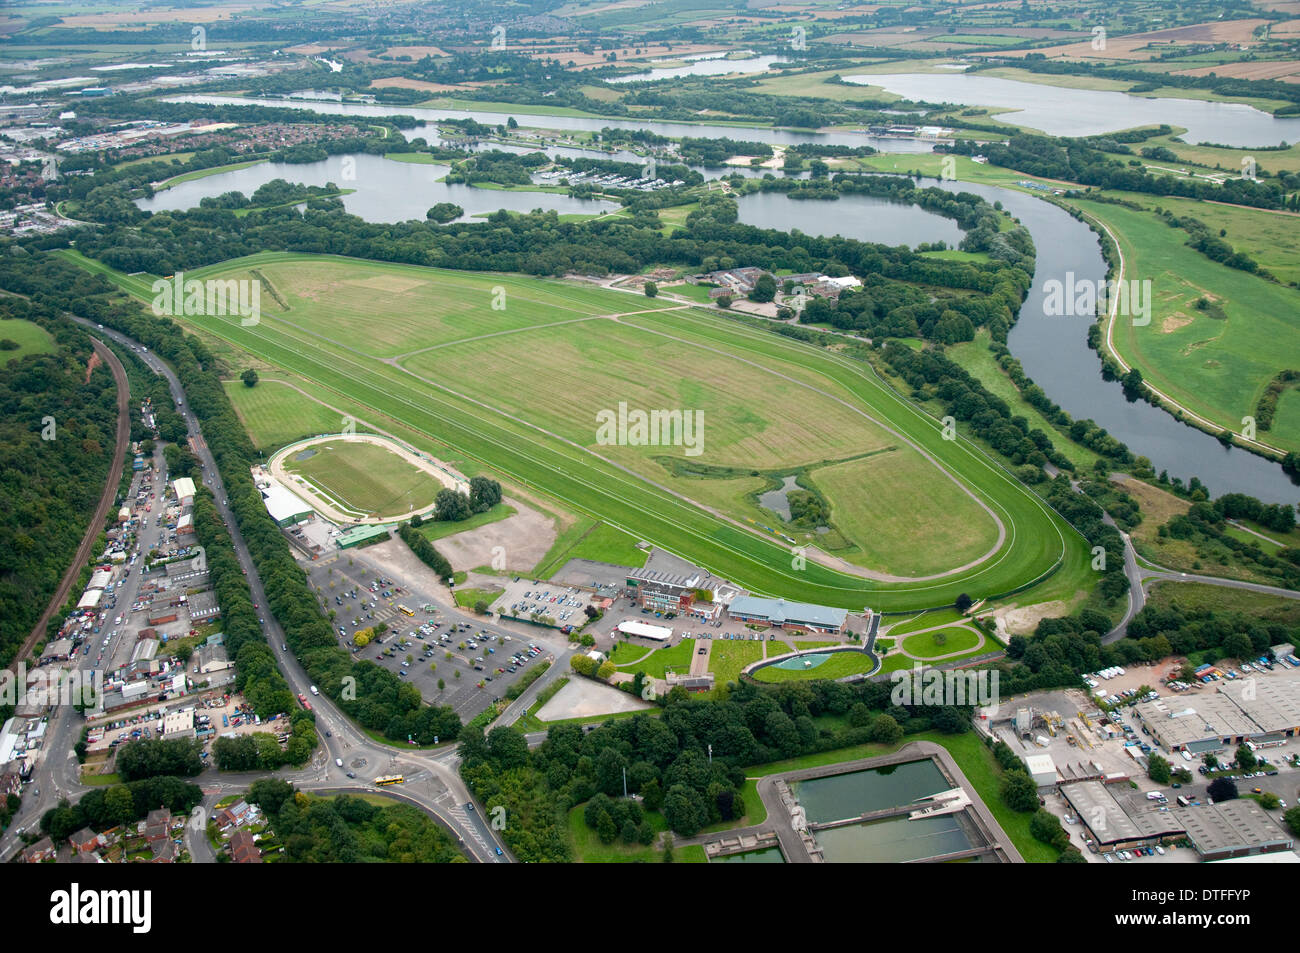 Aerial shot of Colwick Park and the Racecourse in Nottingham City, Nottinghamshire UK - Stock Image